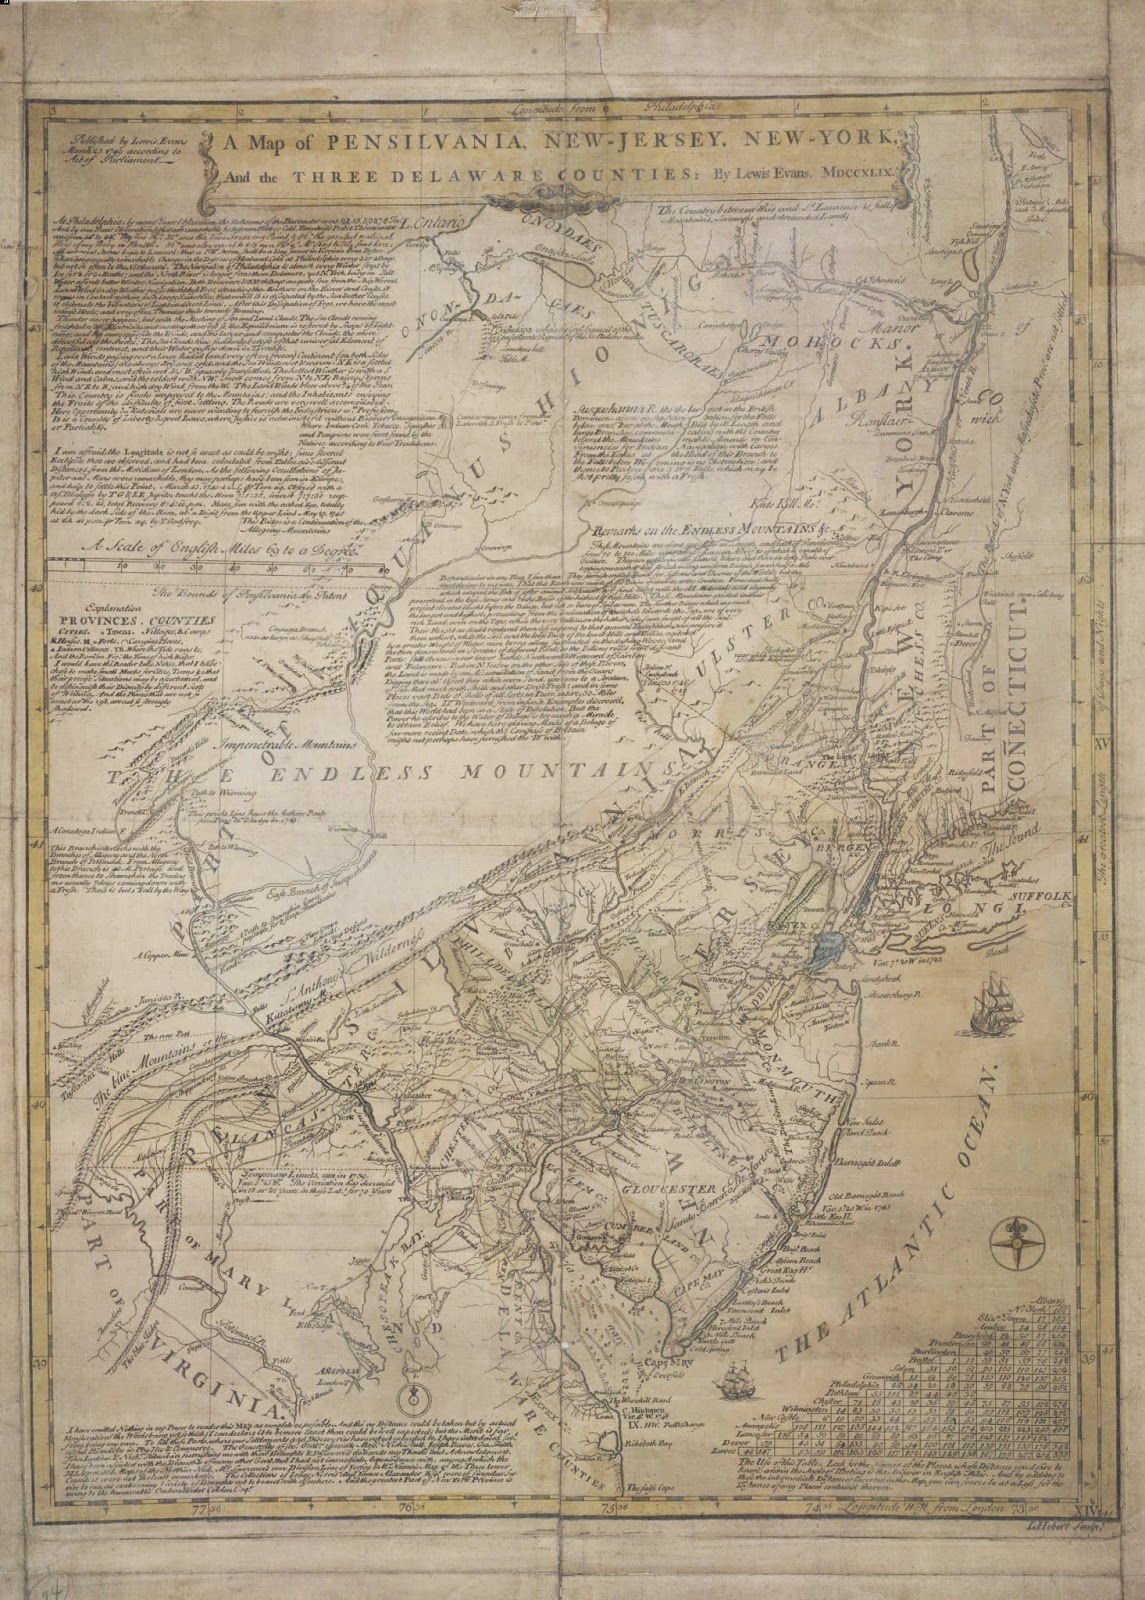 north america 1776 notes evans 1749 map as printed at philadelphia 1749 distance table ms note 18212 prime meridian london philadelphia